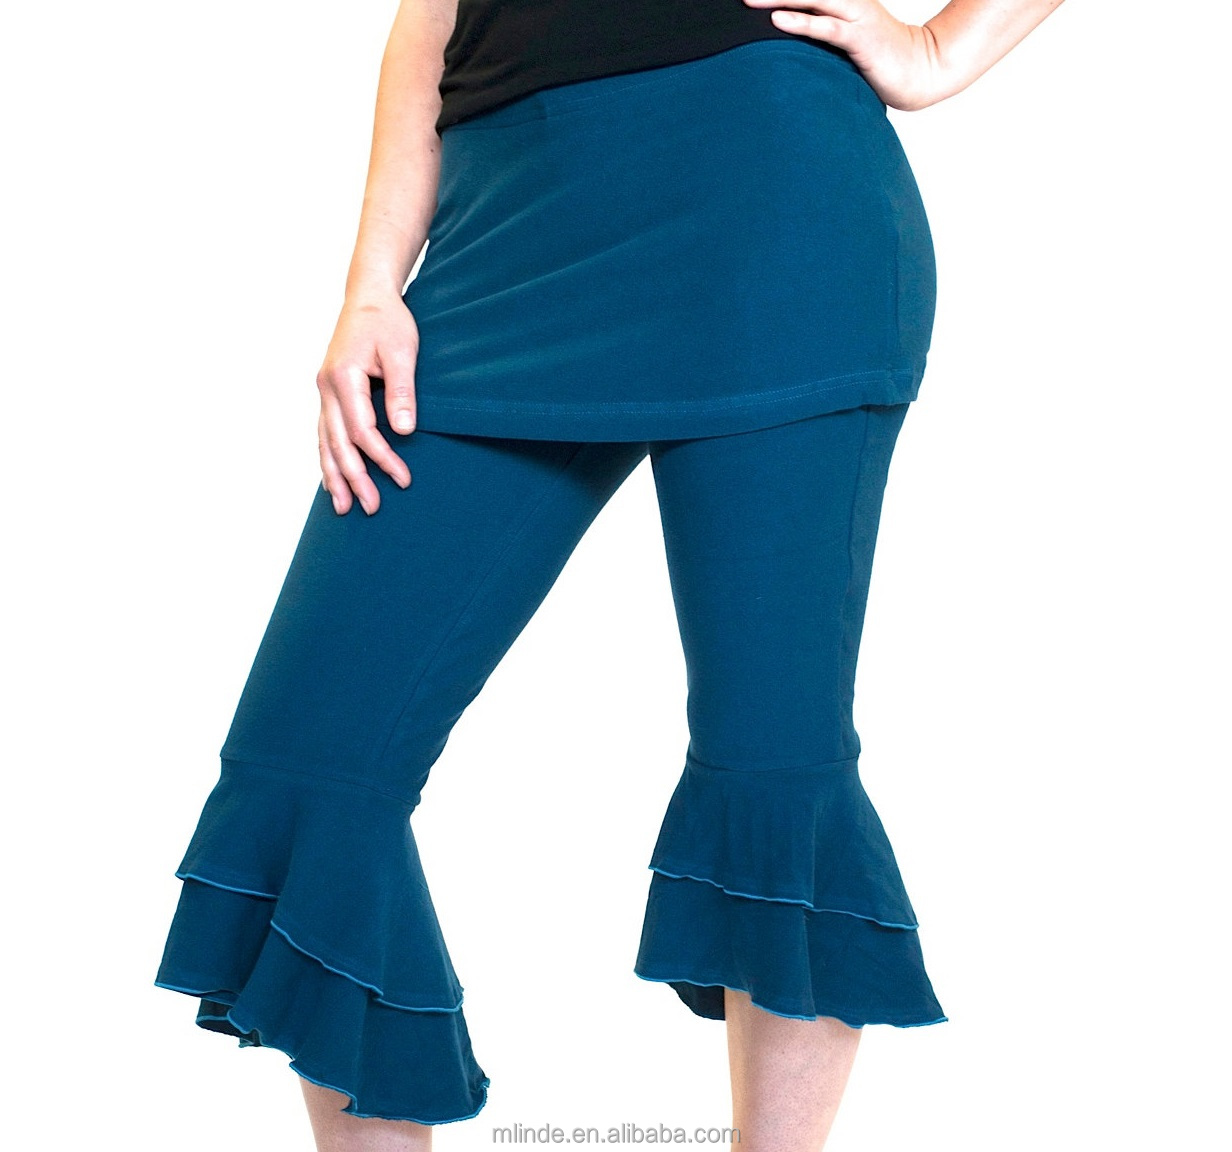 Ruffle bottom Capri Pants / bloomers with skirt women lady yoga dance wear flare women's bottoms